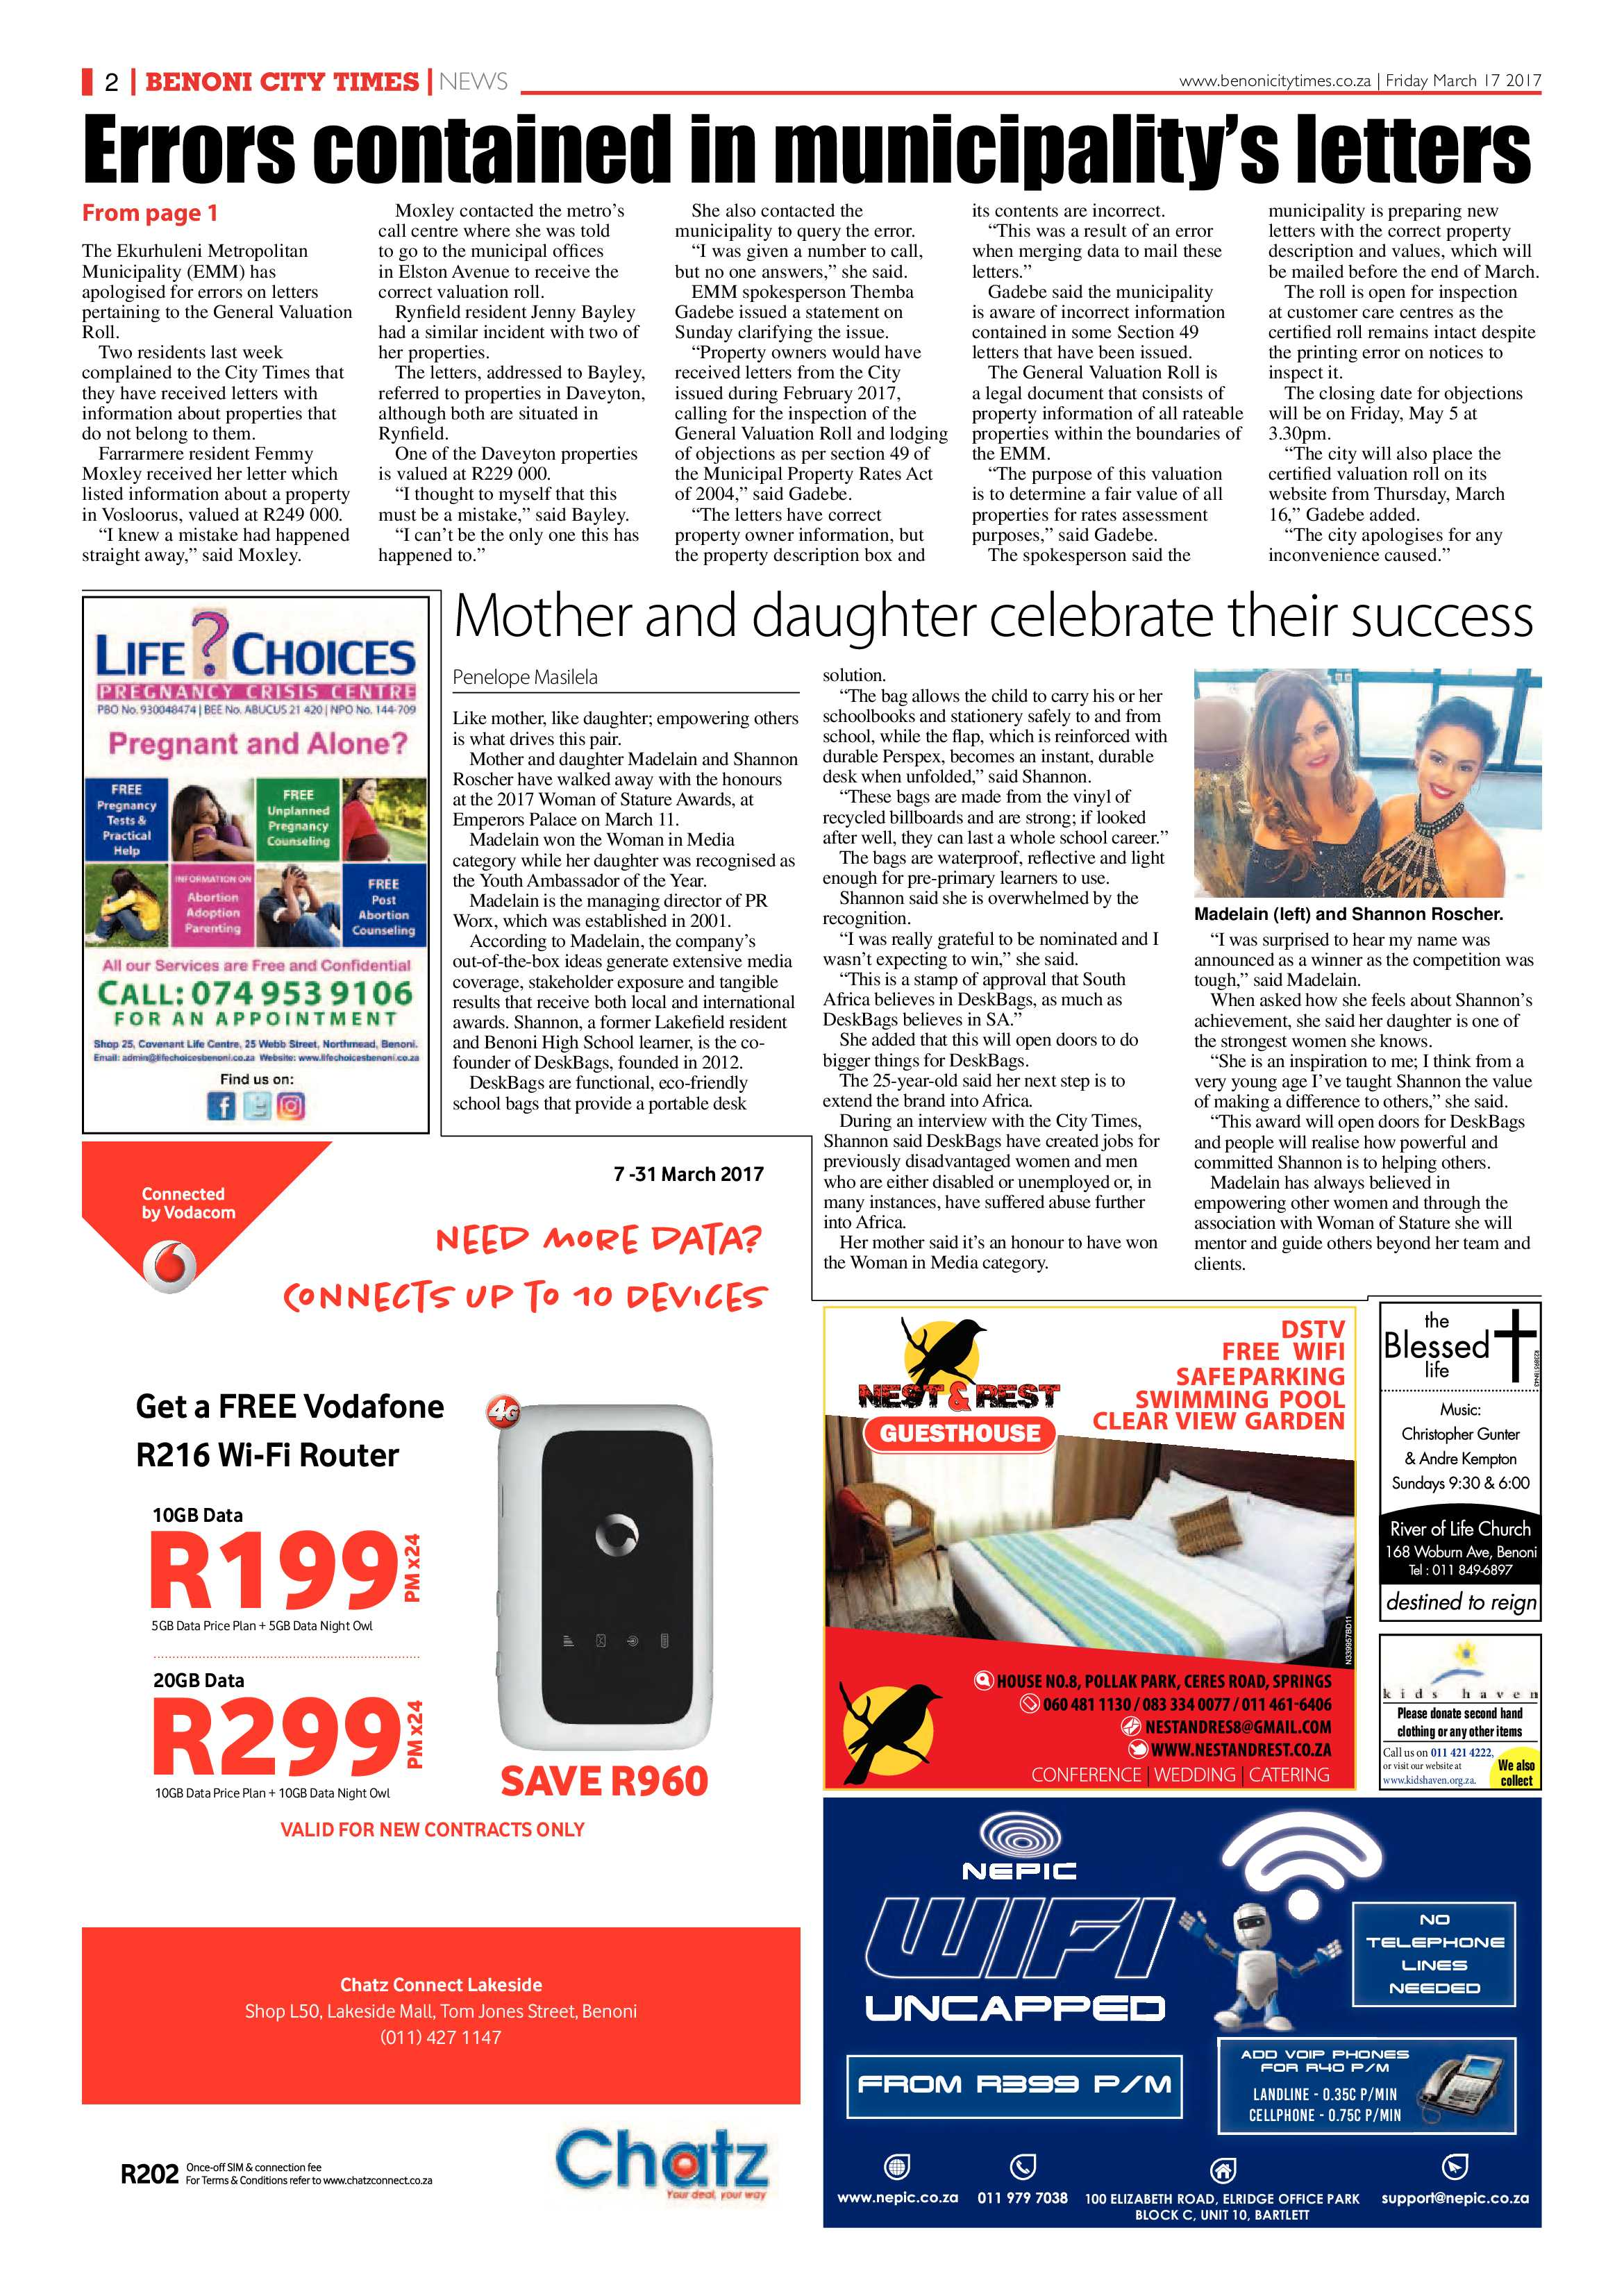 benoni-city-times-16-march-2017-epapers-page-2